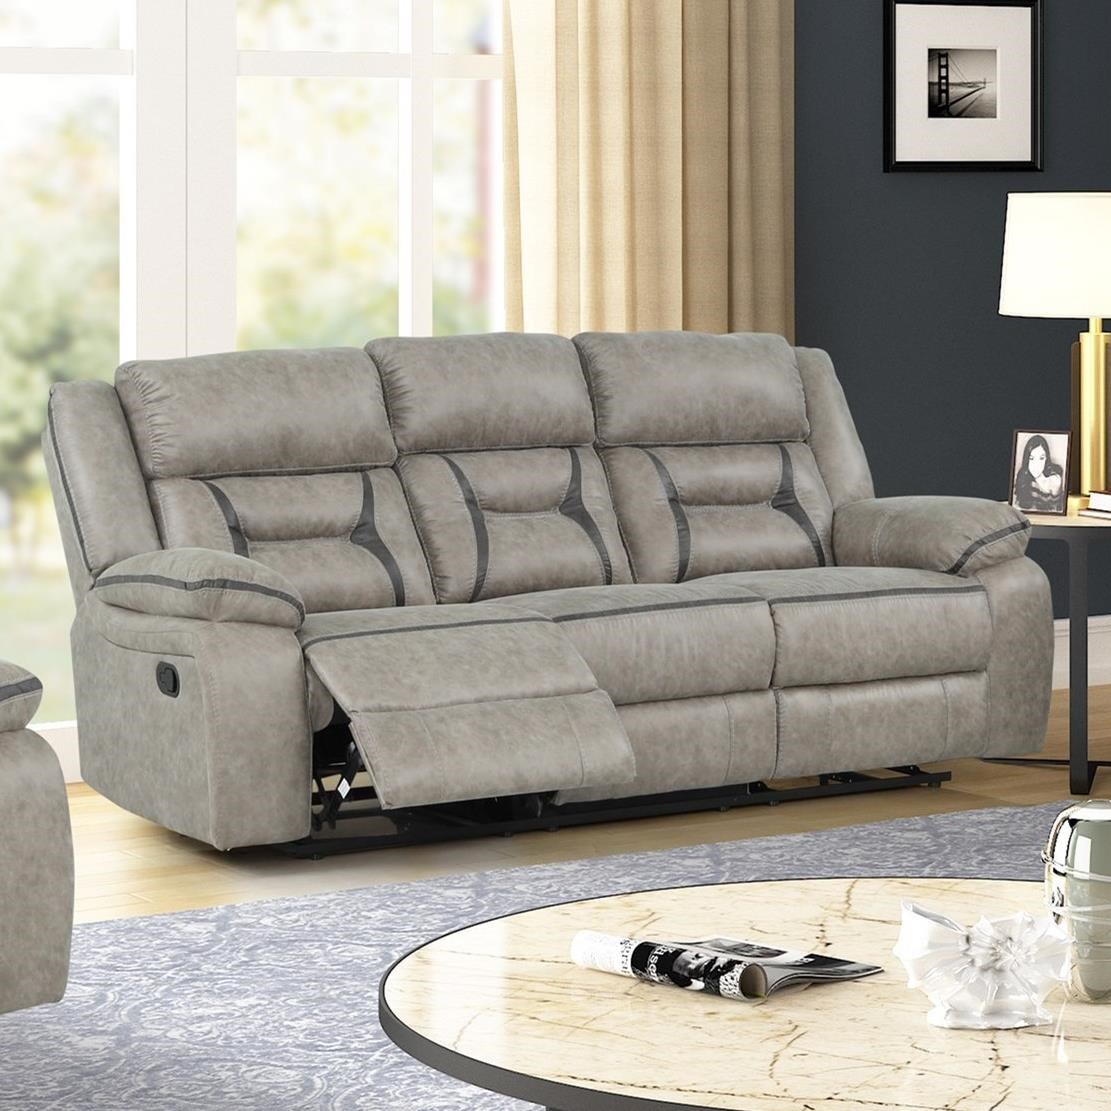 Roswell Reclining Sofa by New Classic at A1 Furniture & Mattress